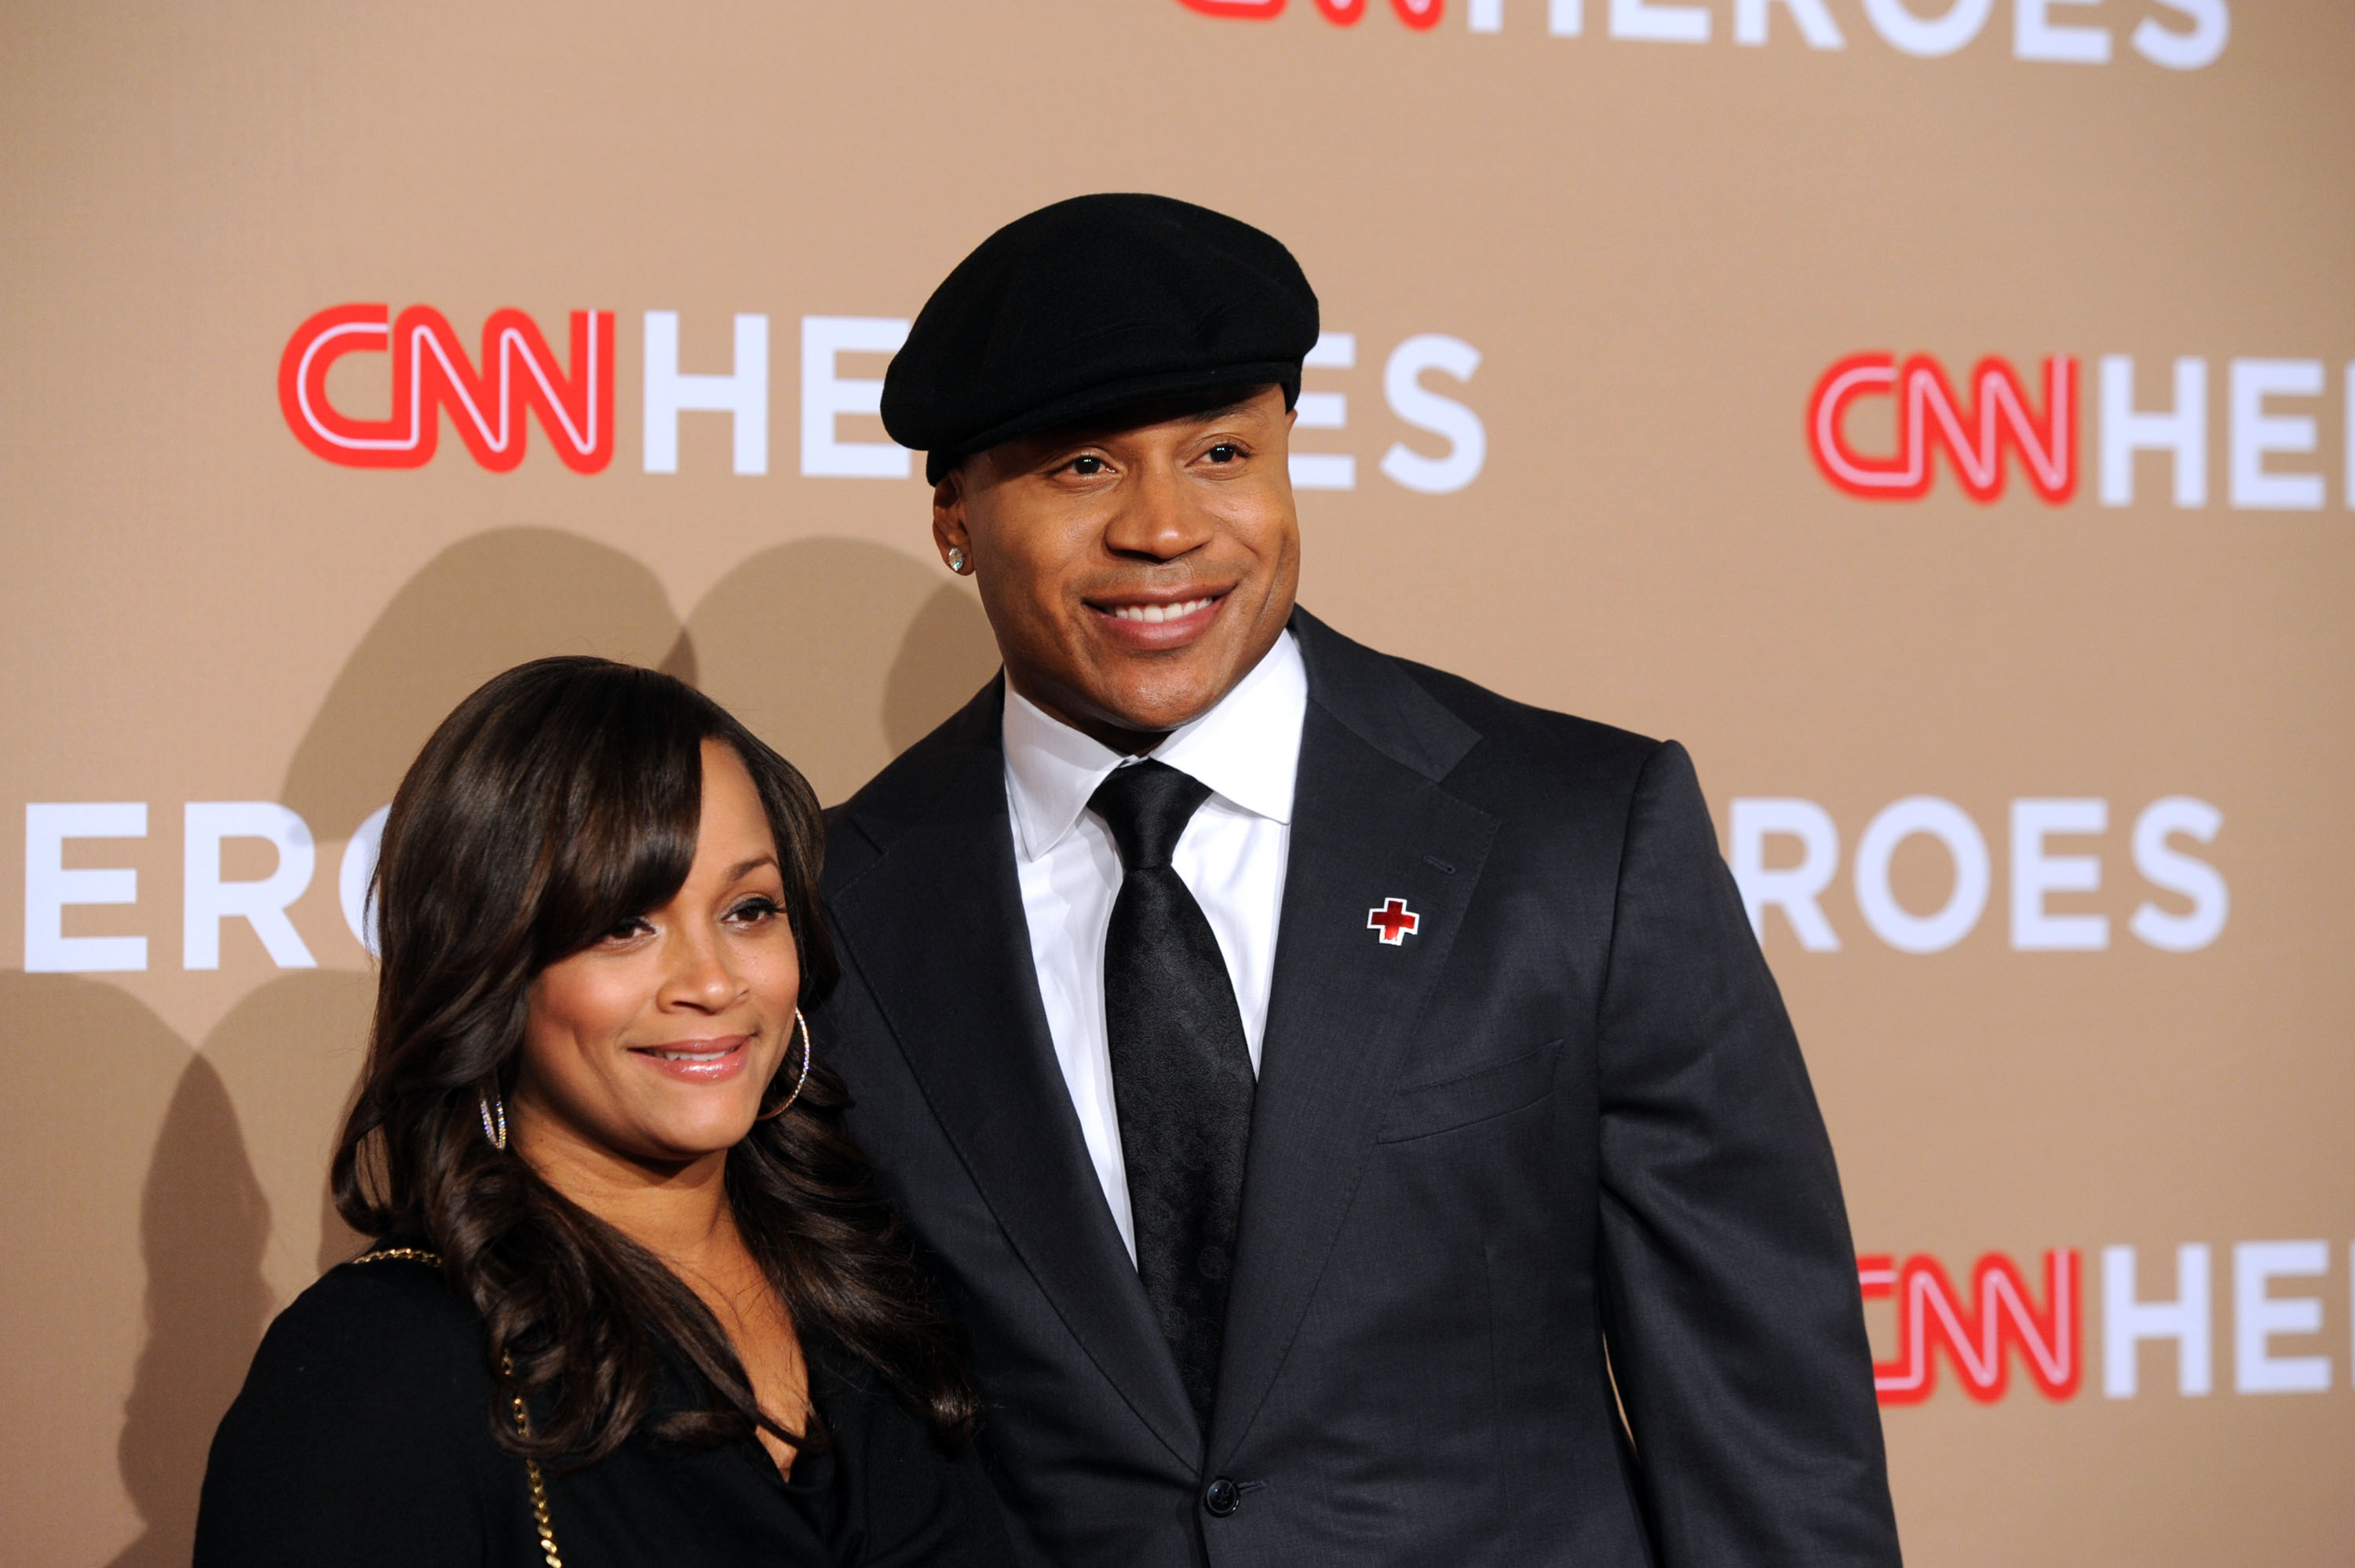 LOS ANGELES, CA - NOVEMBER 20:  arrives at the 2010 CNN Heroes: An All-Star Tribute held at The Shrine Auditorium on November 20, 2010 in Los Angeles, California.  (Photo by Frazer Harrison/Getty Images)